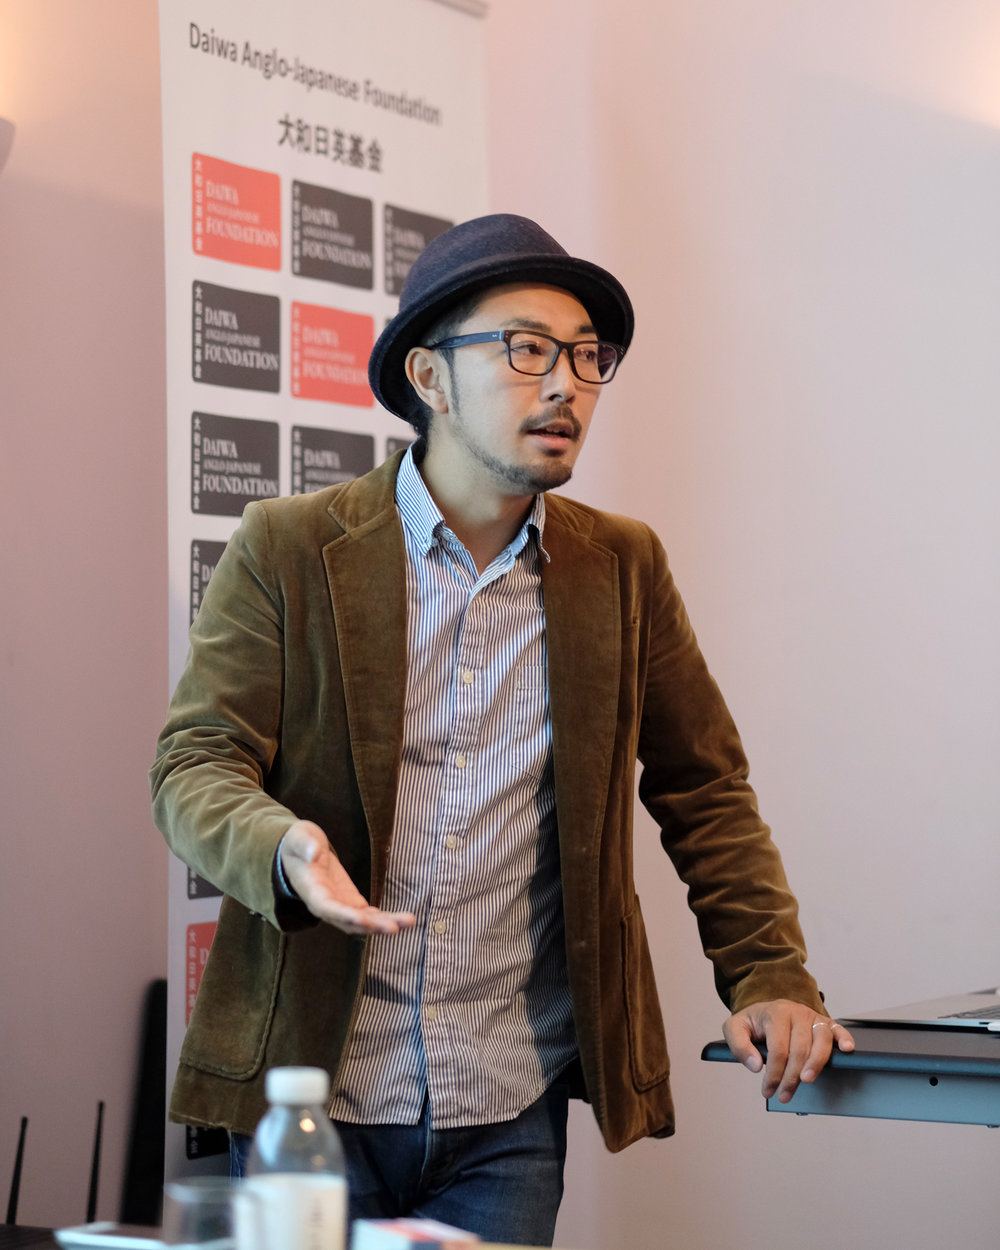 Kazuma Obara giving a presentation on the 18th October, 2018 . Taken by Graham Land